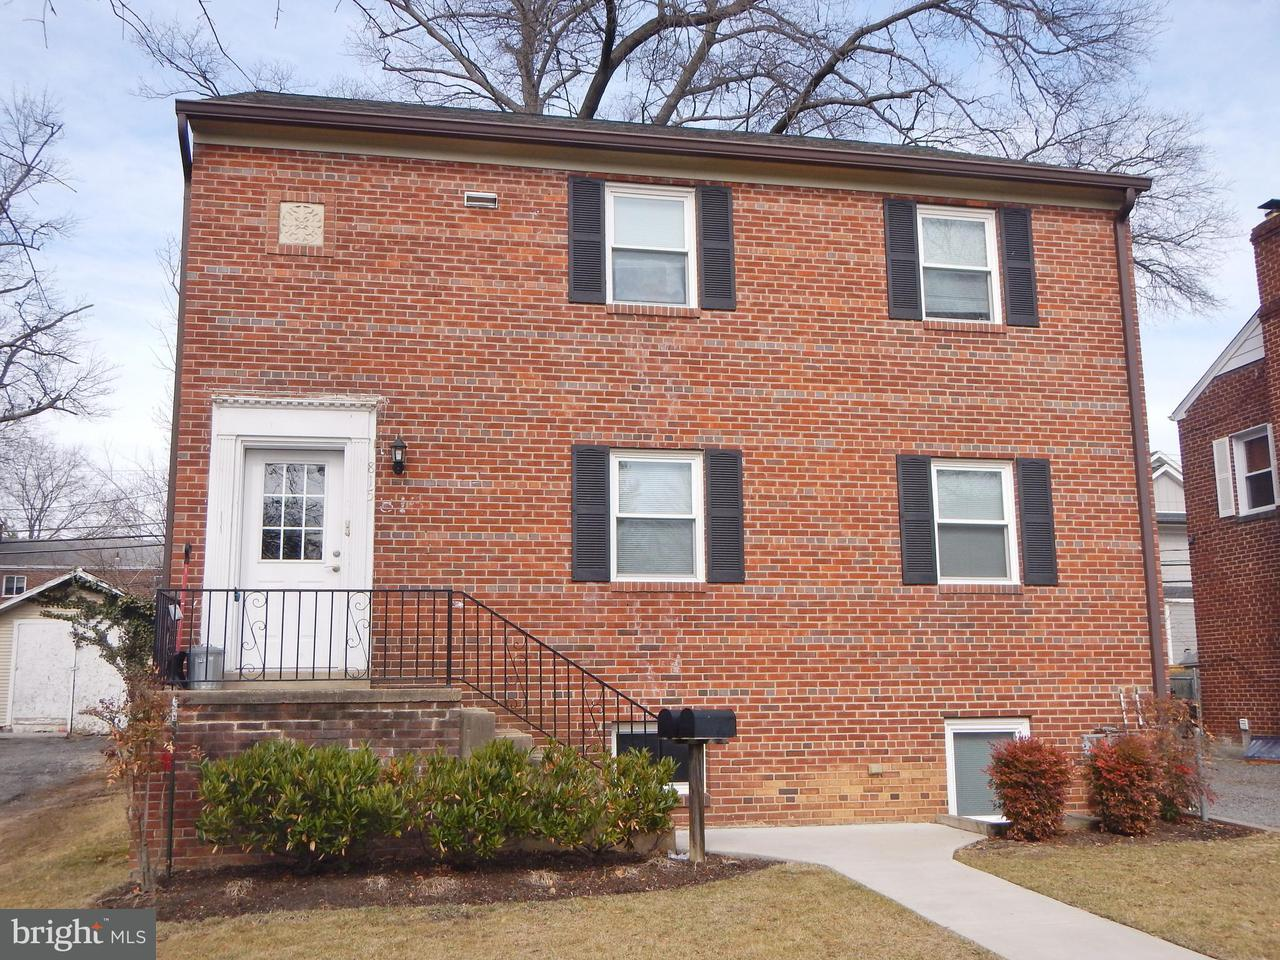 Multi-Family Home for Sale at 815 23rd St S 815 23rd St S Arlington, Virginia 22202 United States